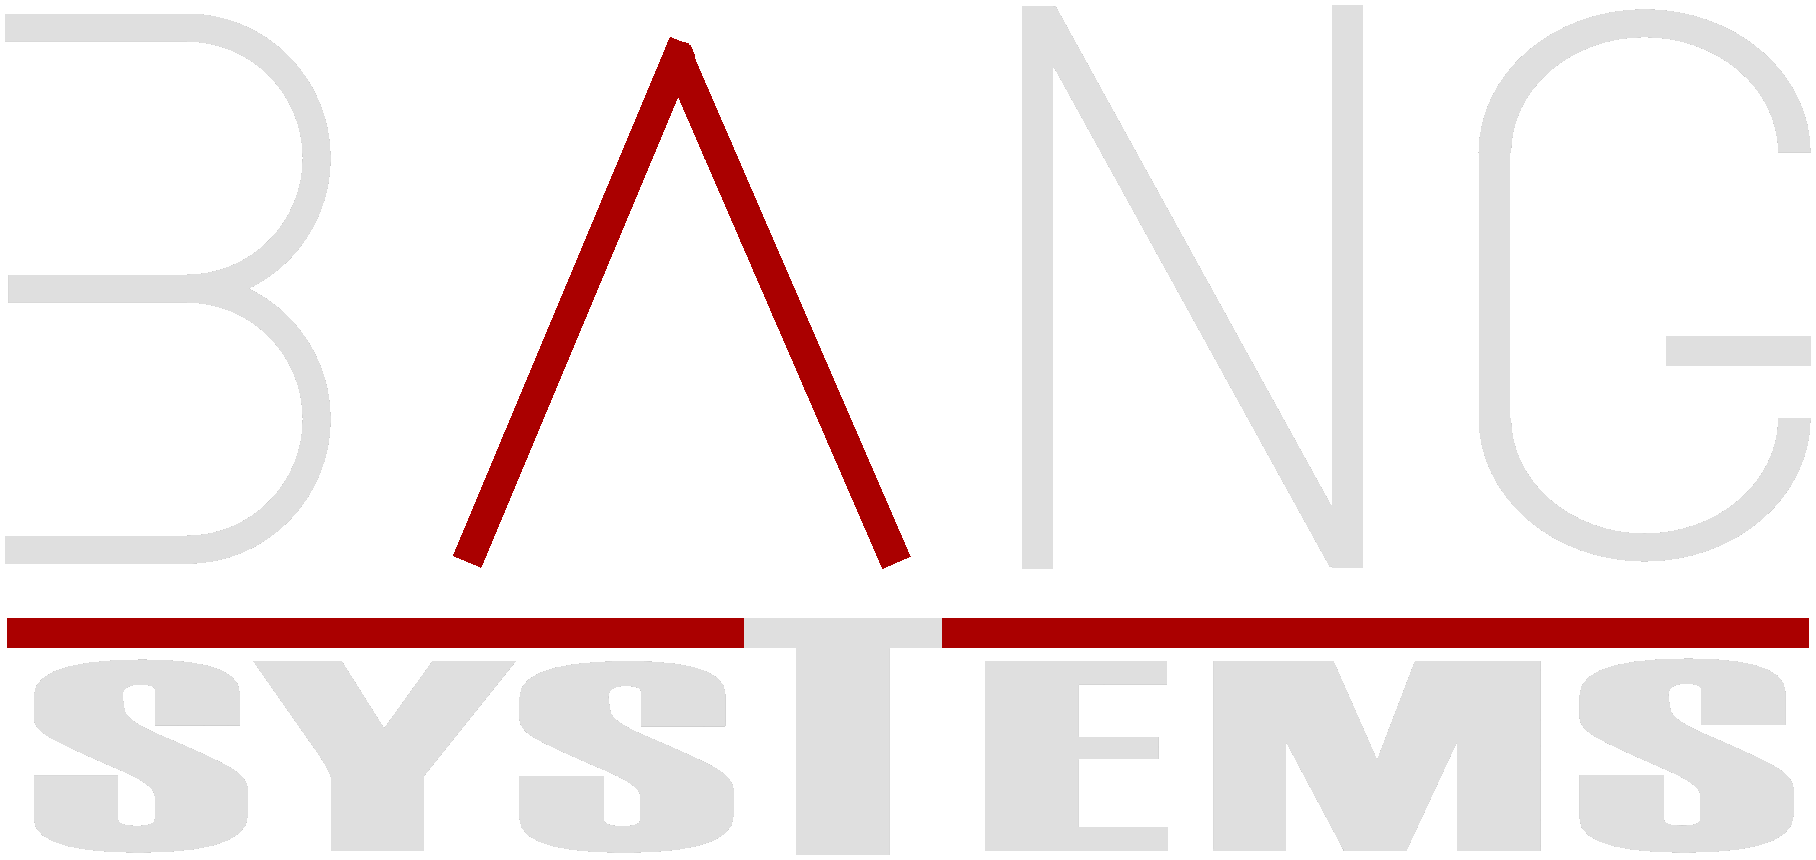 Bang.Systems logo